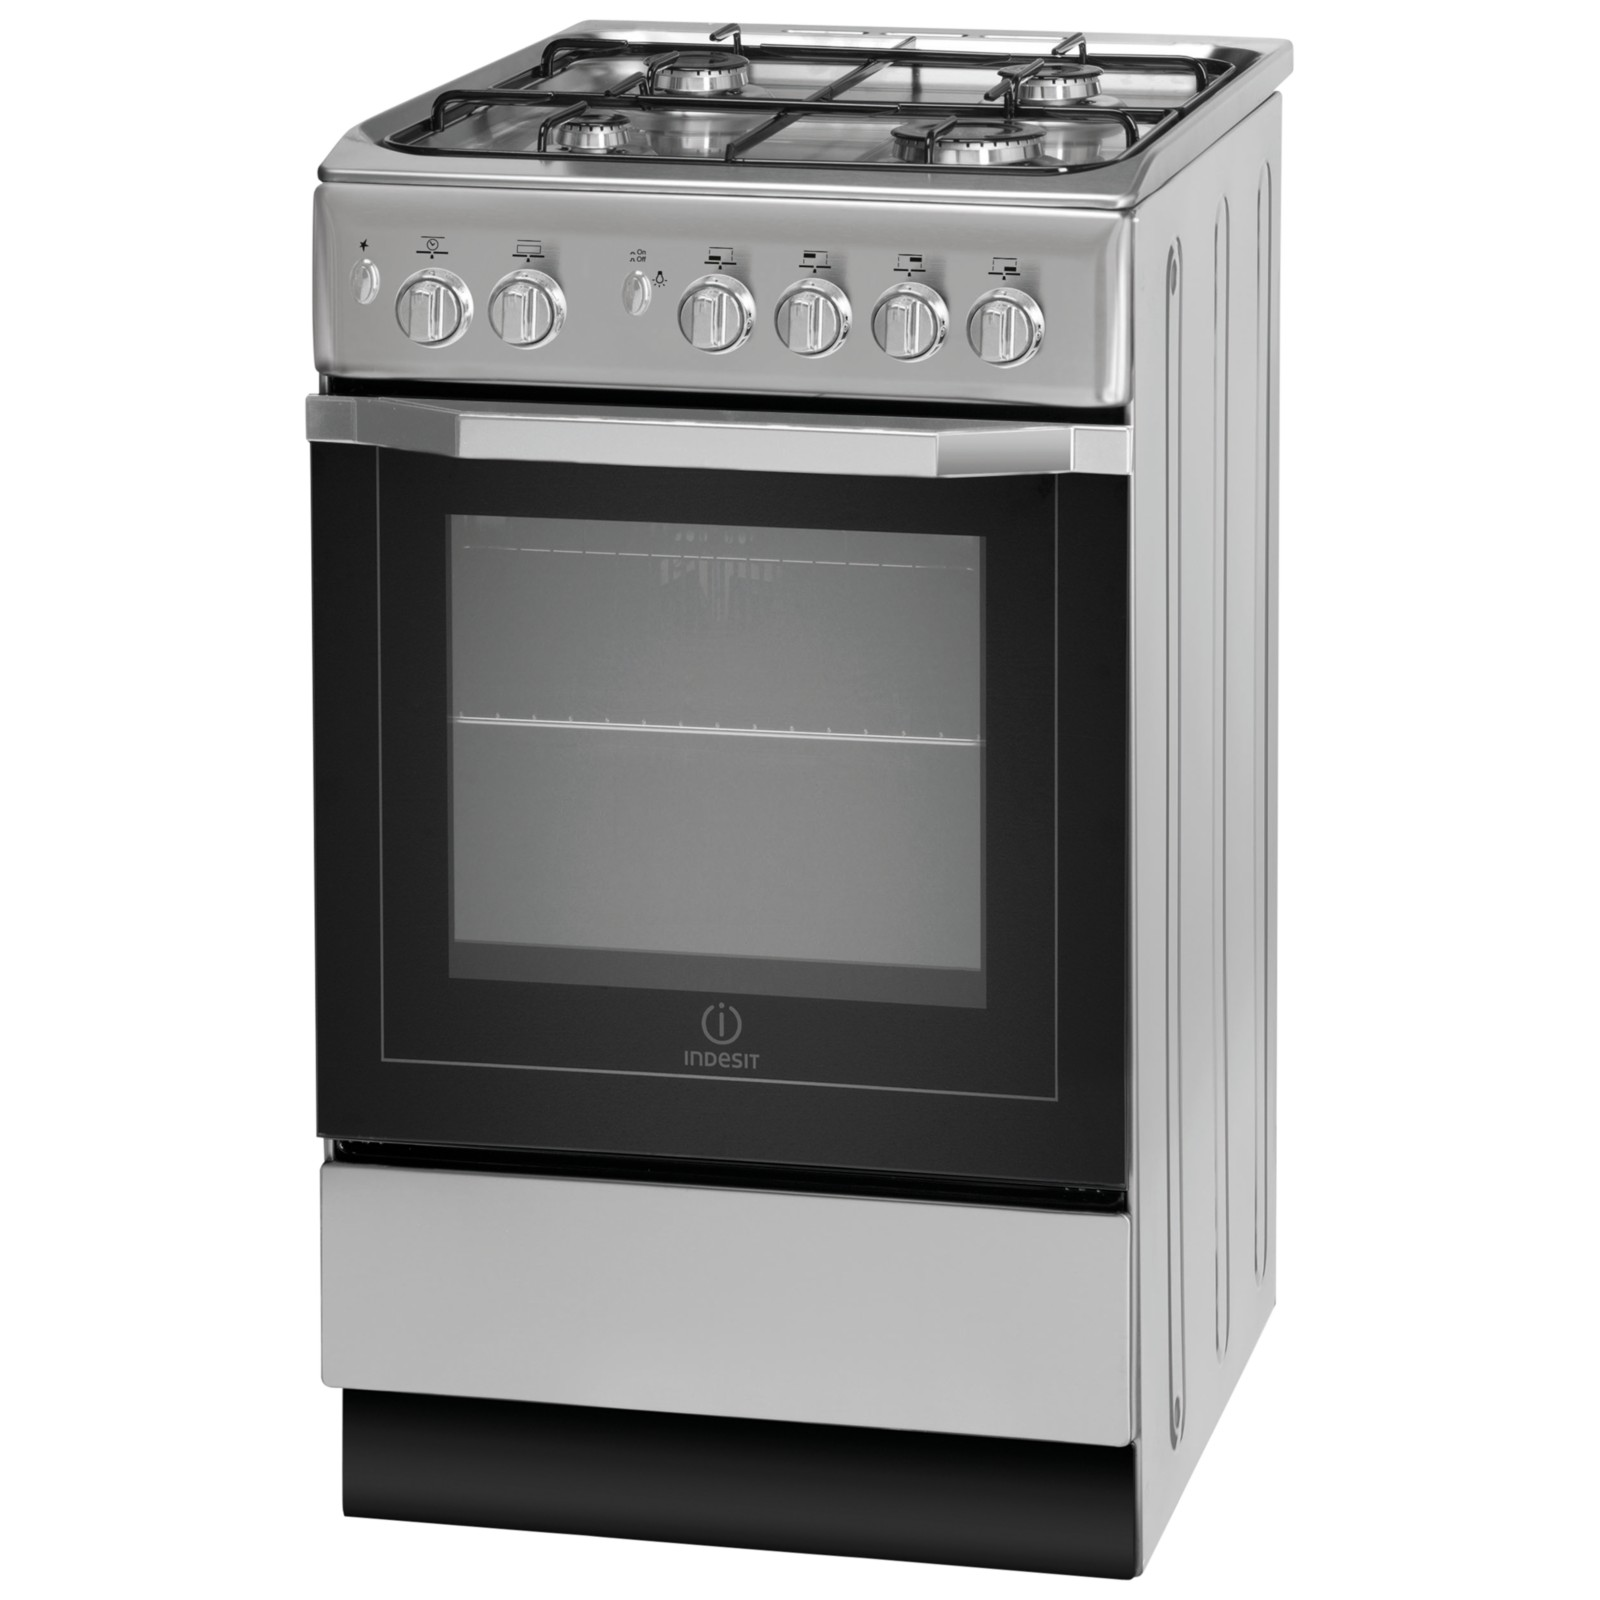 Indesit I5GG1S Freestanding Gas Cooker